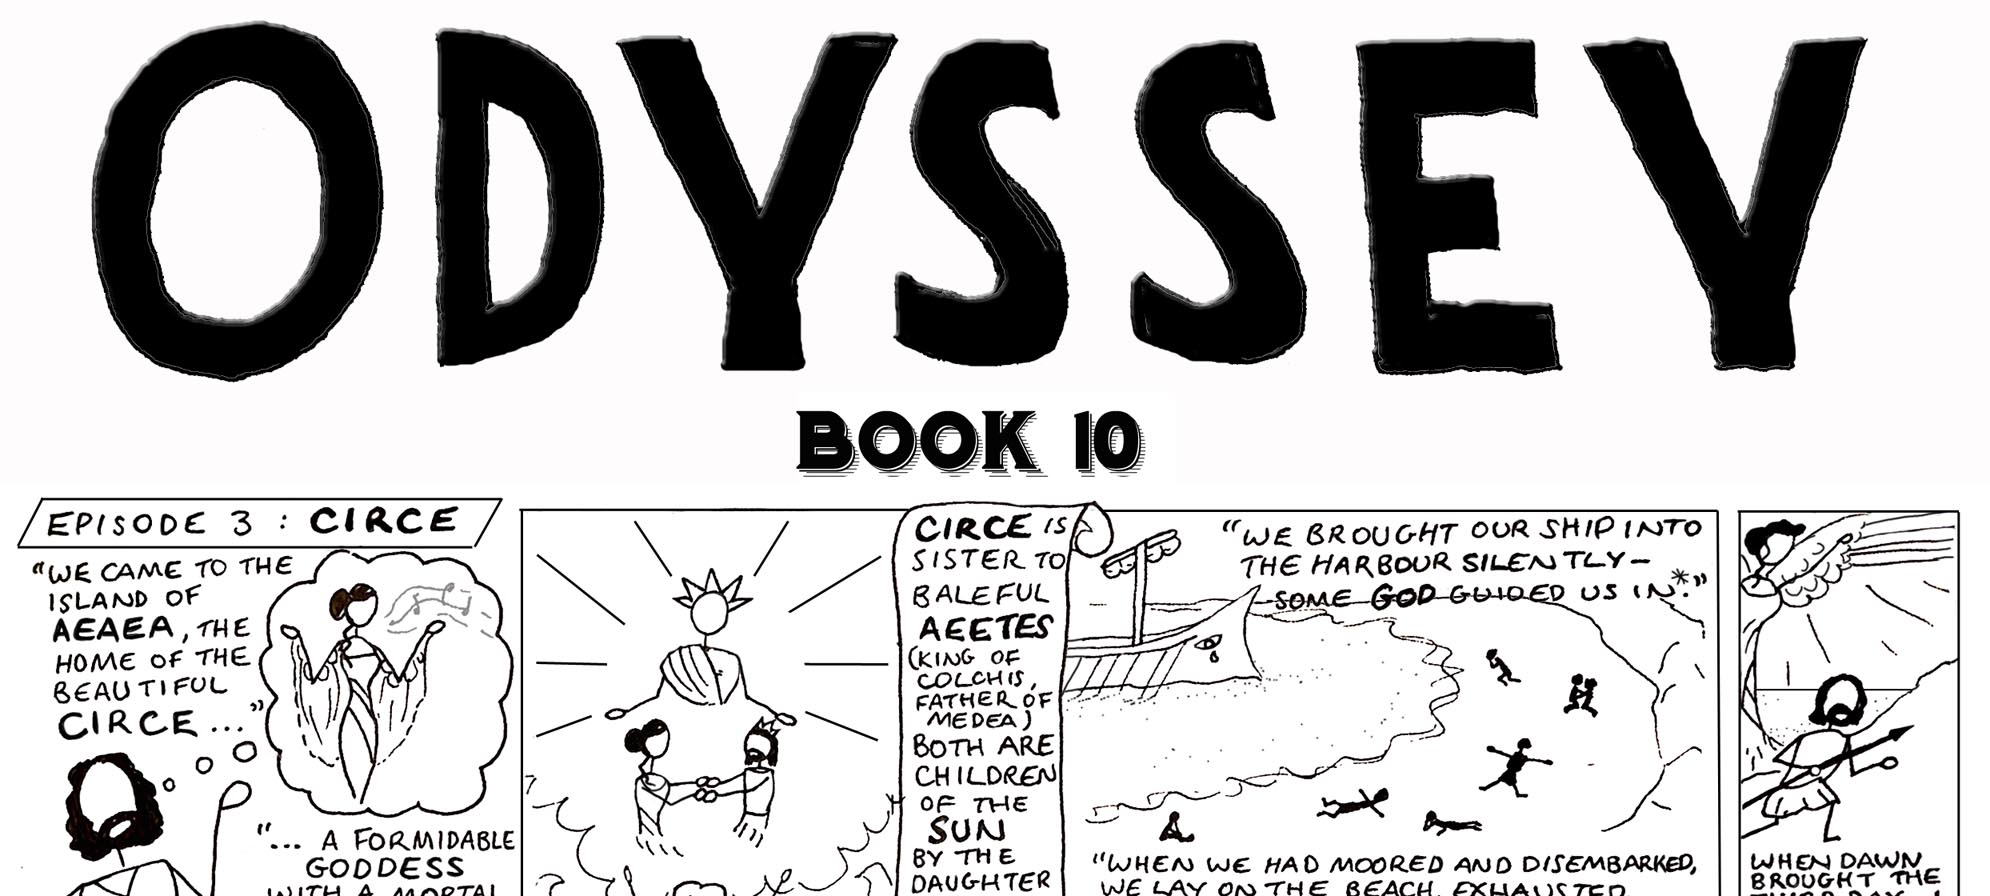 The Odyssey, Book 10